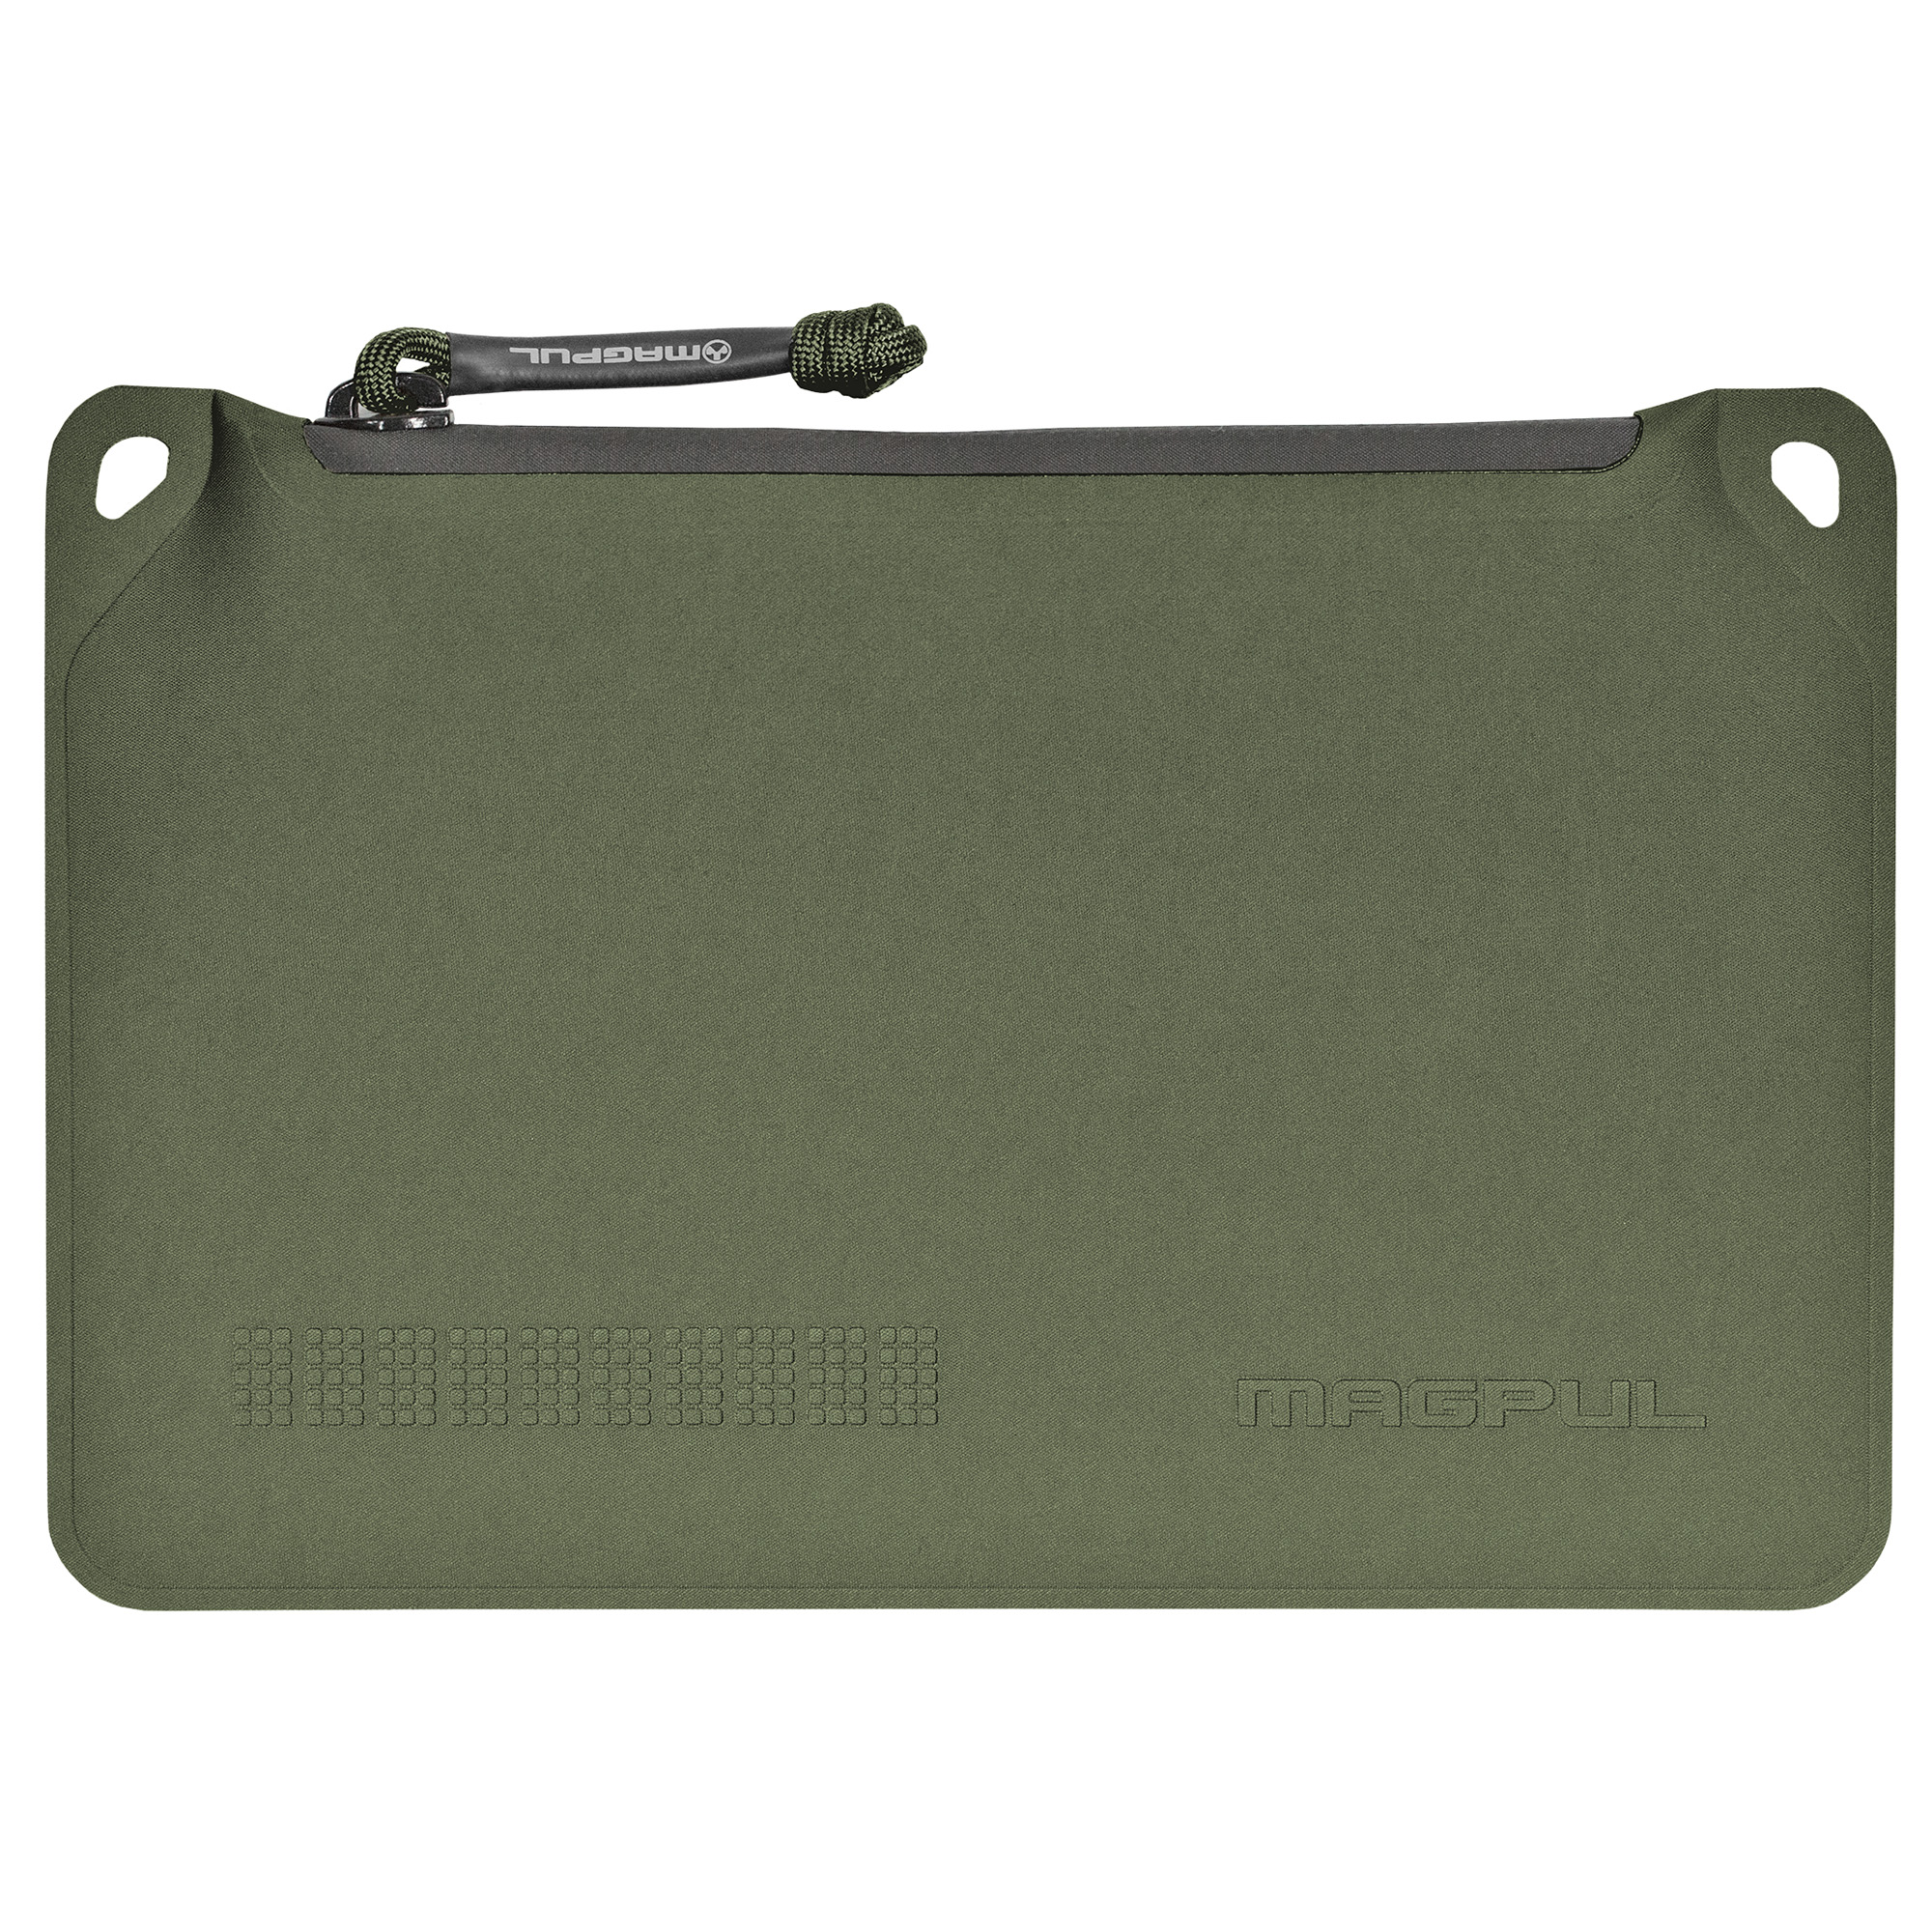 """The Magpul DAKA Pouch"""" designed to bring organization to the dusty"""" dirty"""" and muddy world we work and play in. Made from polymer infused textiles that are welded on all seams and use a genuine YKK(R) water resistant zipper. The construction methods and materials used mean that these pouches are at home in hard use applications like tool storage or bulk storage of your reloaded ammunition as well as lighter duties like organizing your personal electronic accessories. Although these pouches are not 100% water proof (read submersible) they will keep your items dry under most wet weather situations making them a great choice for most outdoor adventures. Made in the U.S.A."""